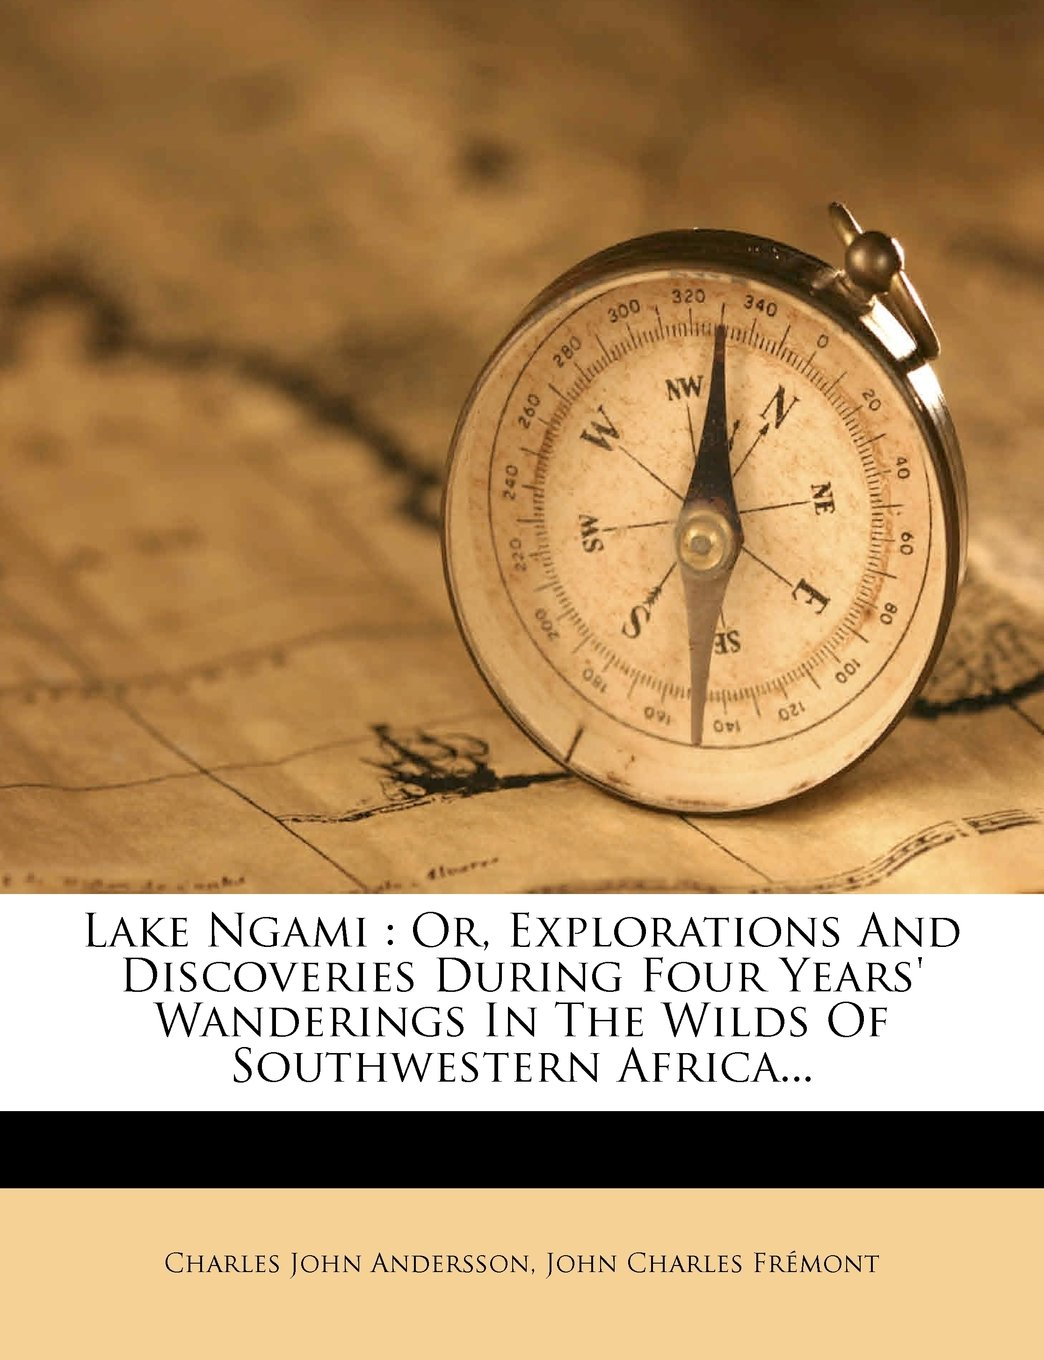 Download Lake Ngami: Or, Explorations and Discoveries During Four Years' Wanderings in the Wilds of Southwestern Africa... PDF